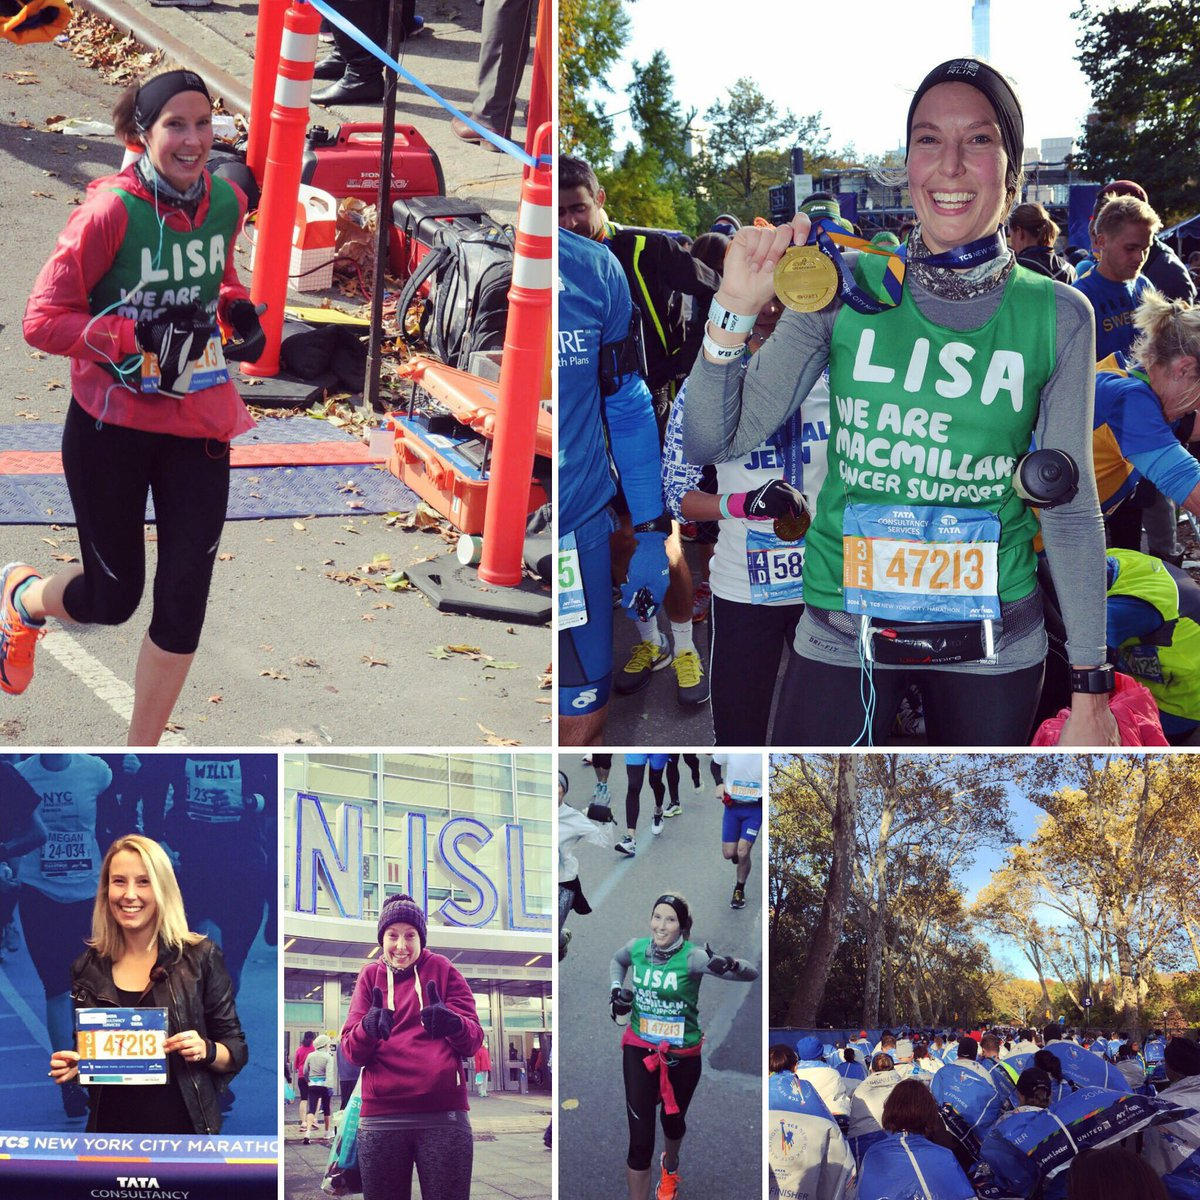 Read about @CDFRunners Lisa's journey 🏃🏻...